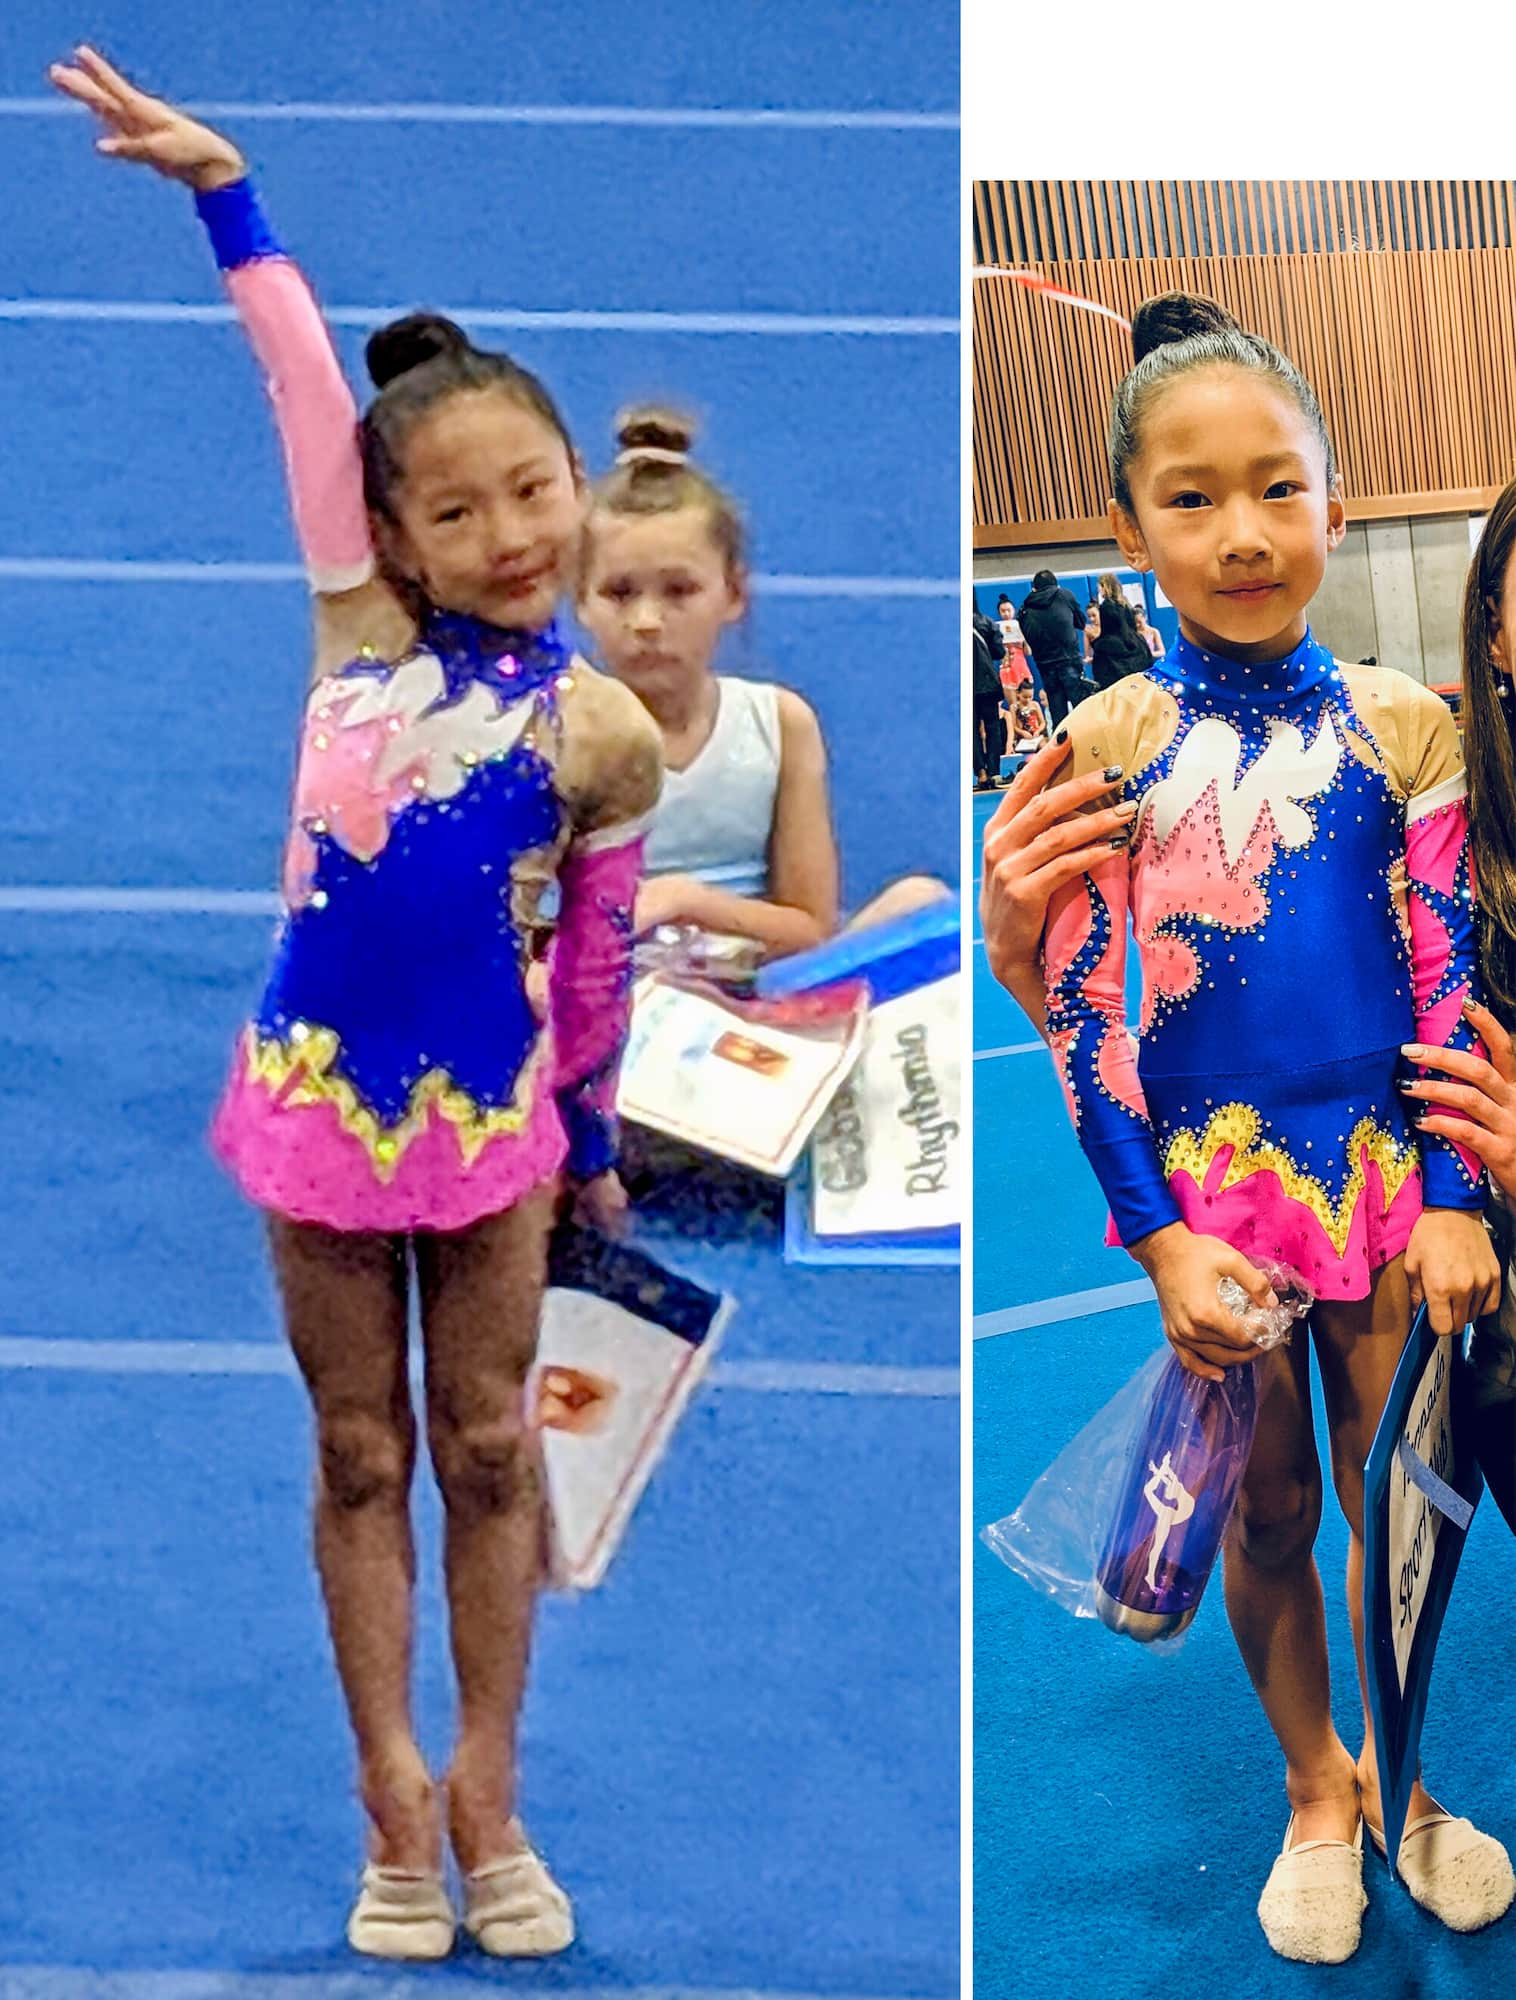 Rhythmic Gymnastics Leotard for Annabeth from USA